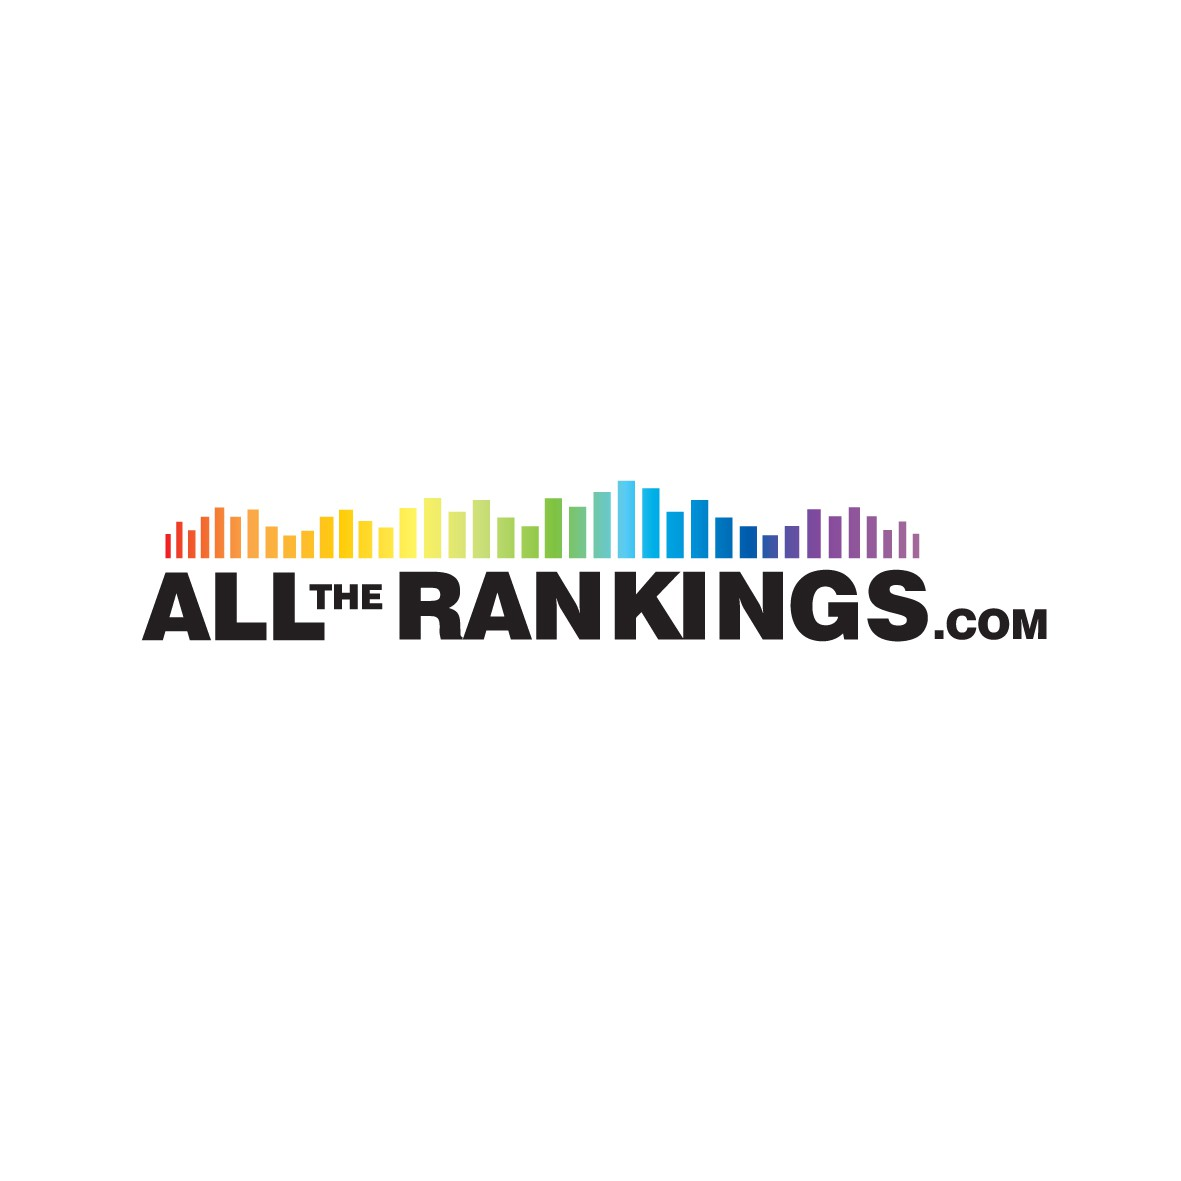 Create the next logo for All the Rankings.com